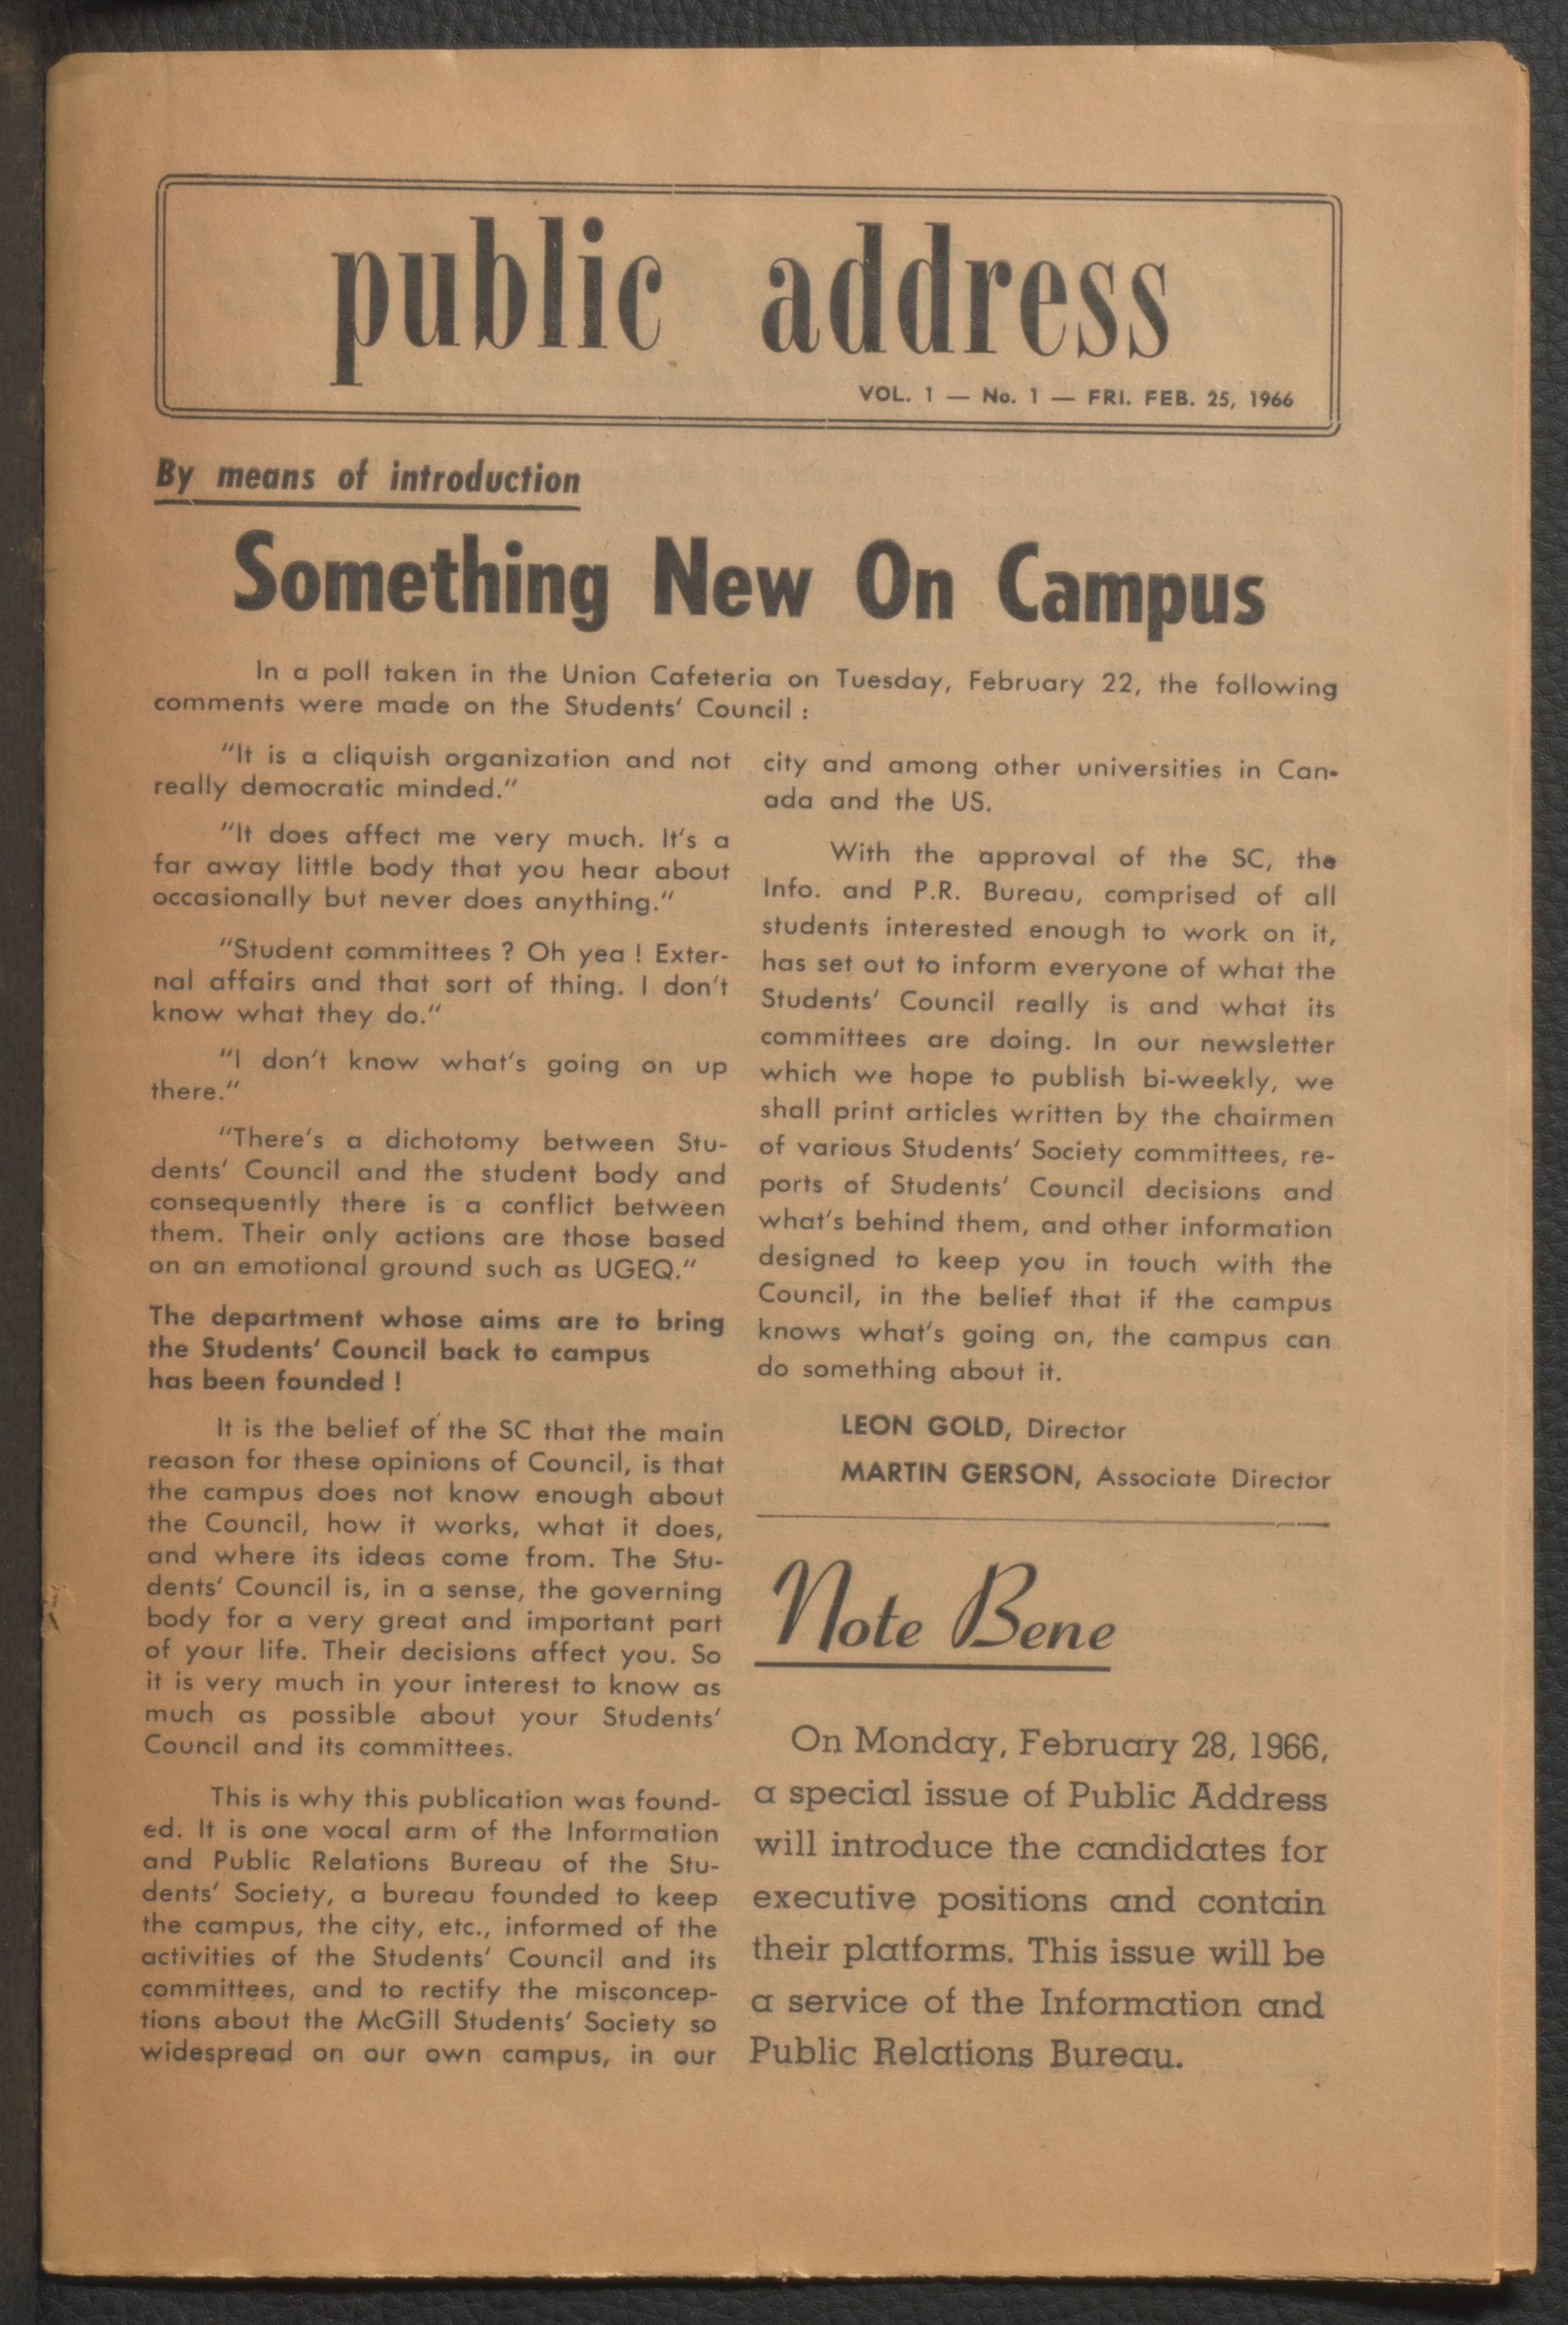 Cover page. Public address Vol. 01 No.001: February 25, 1966. McGill University.